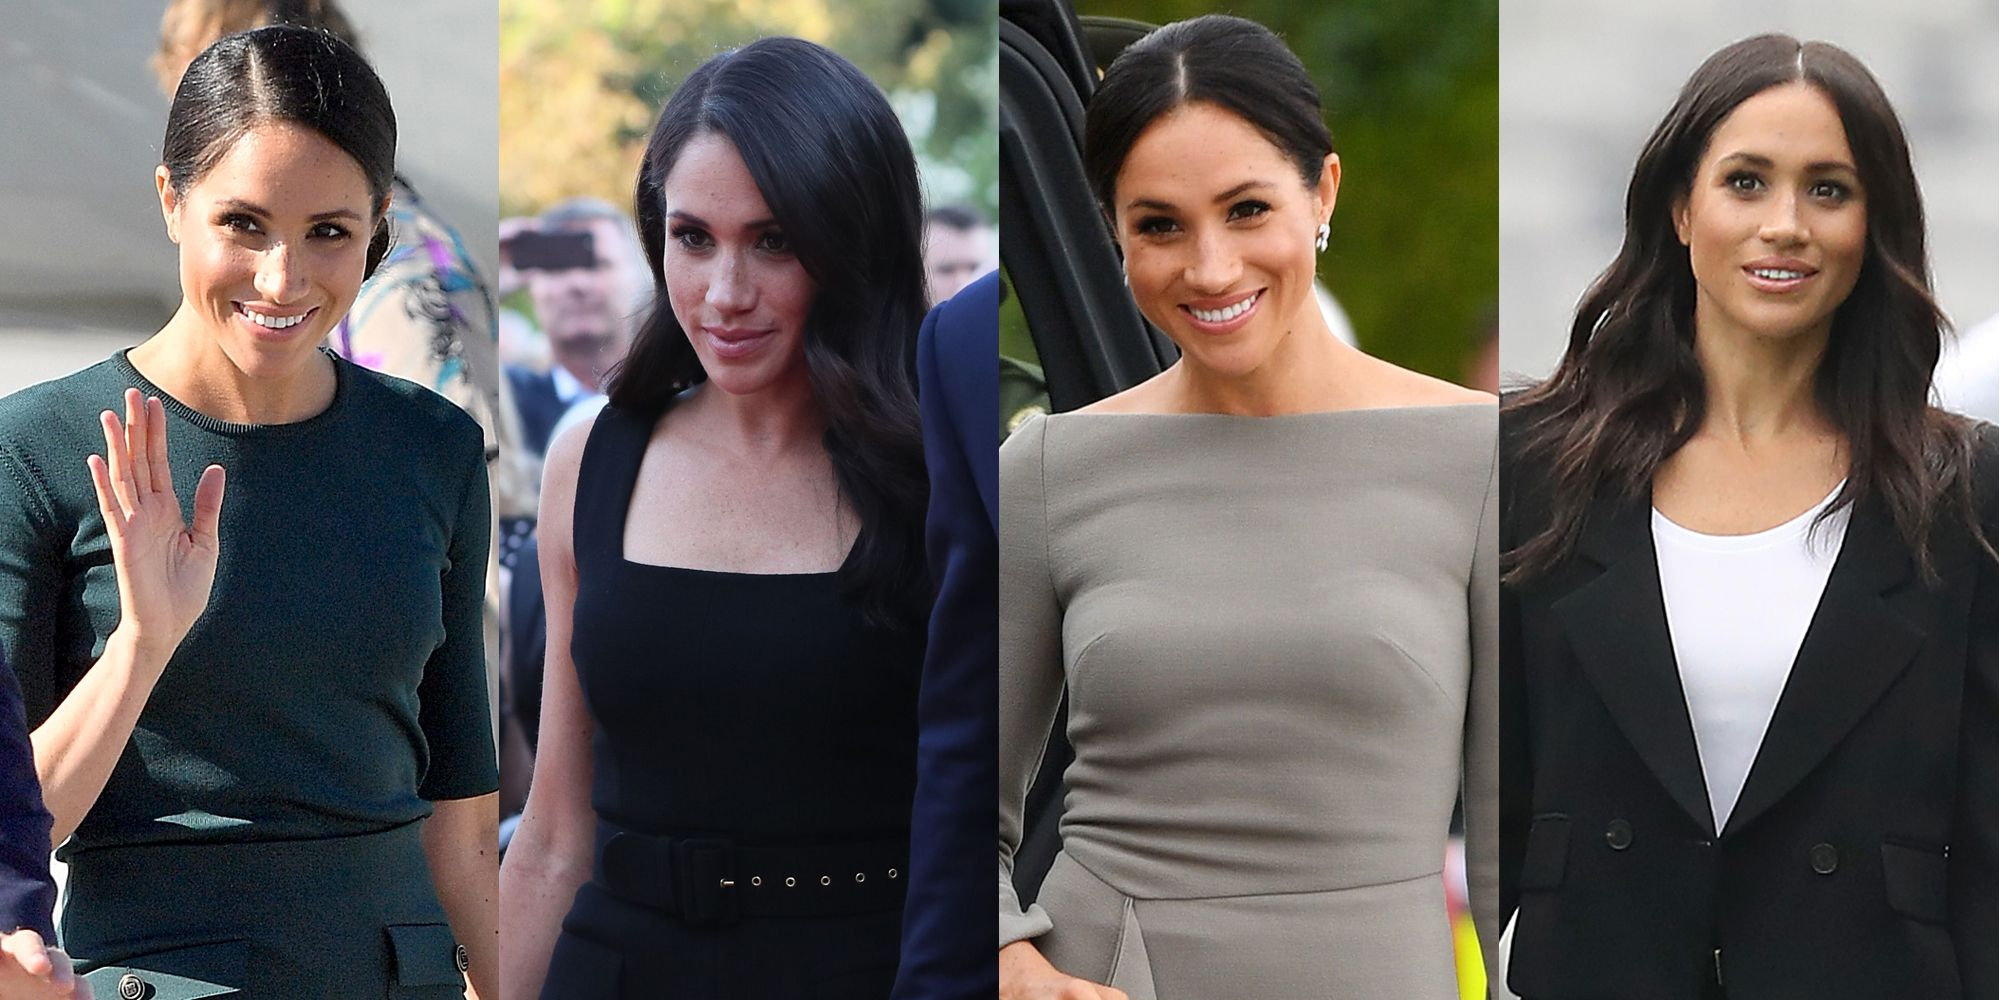 Meghan Markle Wore 4 Outfits Worth Over $40K on Her First Royal Tour